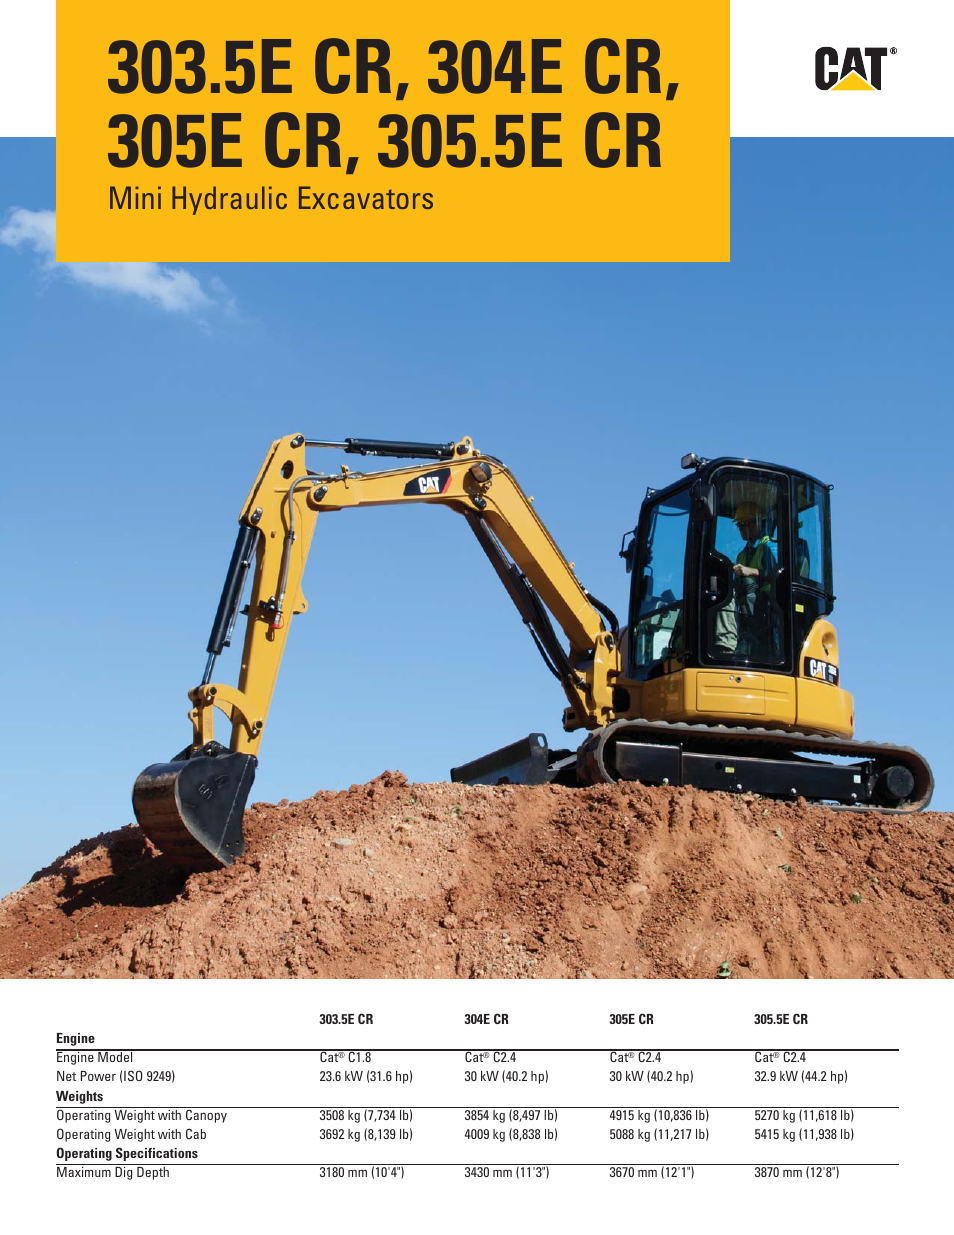 Milton Cat 305 5e Cr User Manual 24 Pages